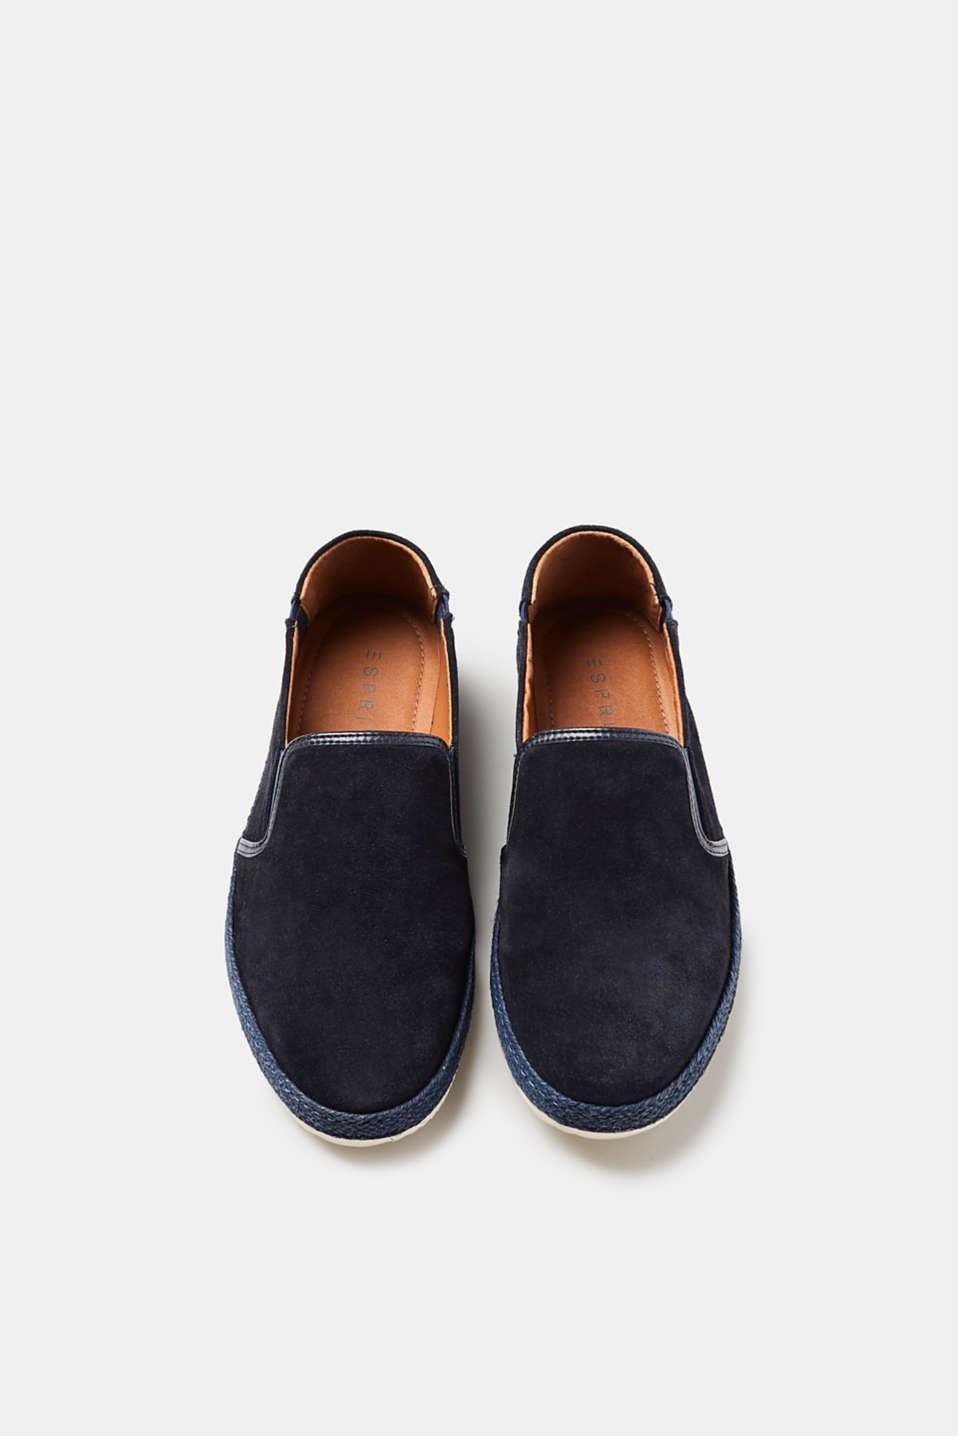 Summery suede loafers